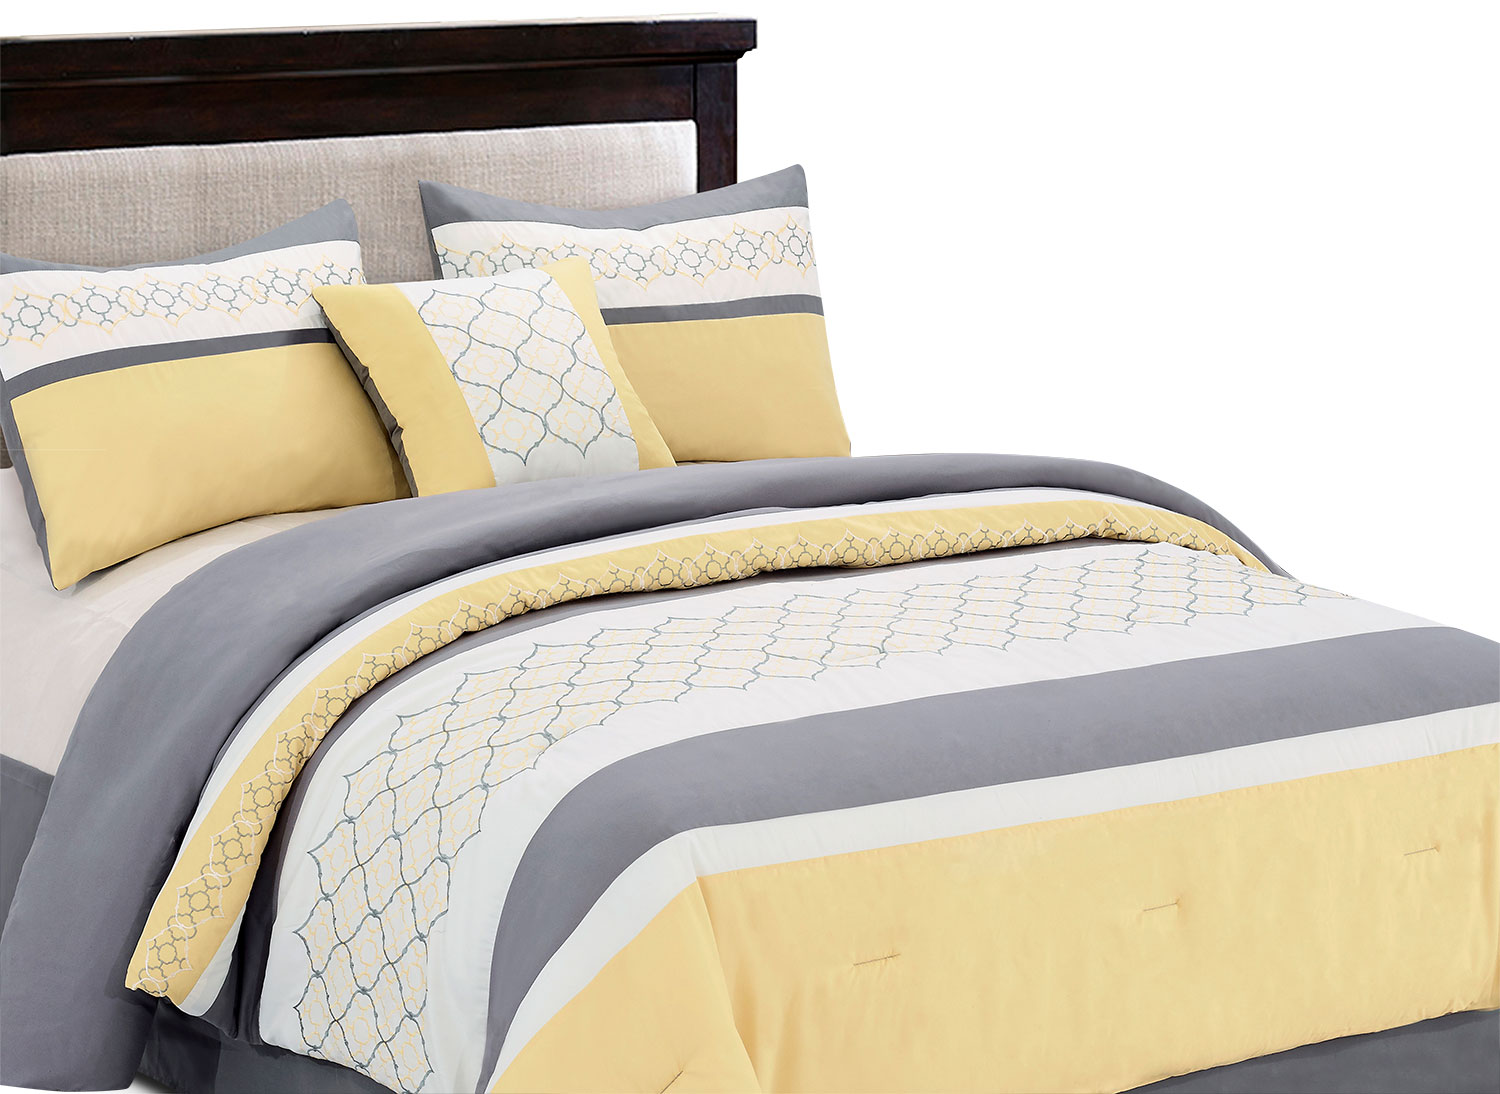 Vermont 4-Piece Queen Comforter Set